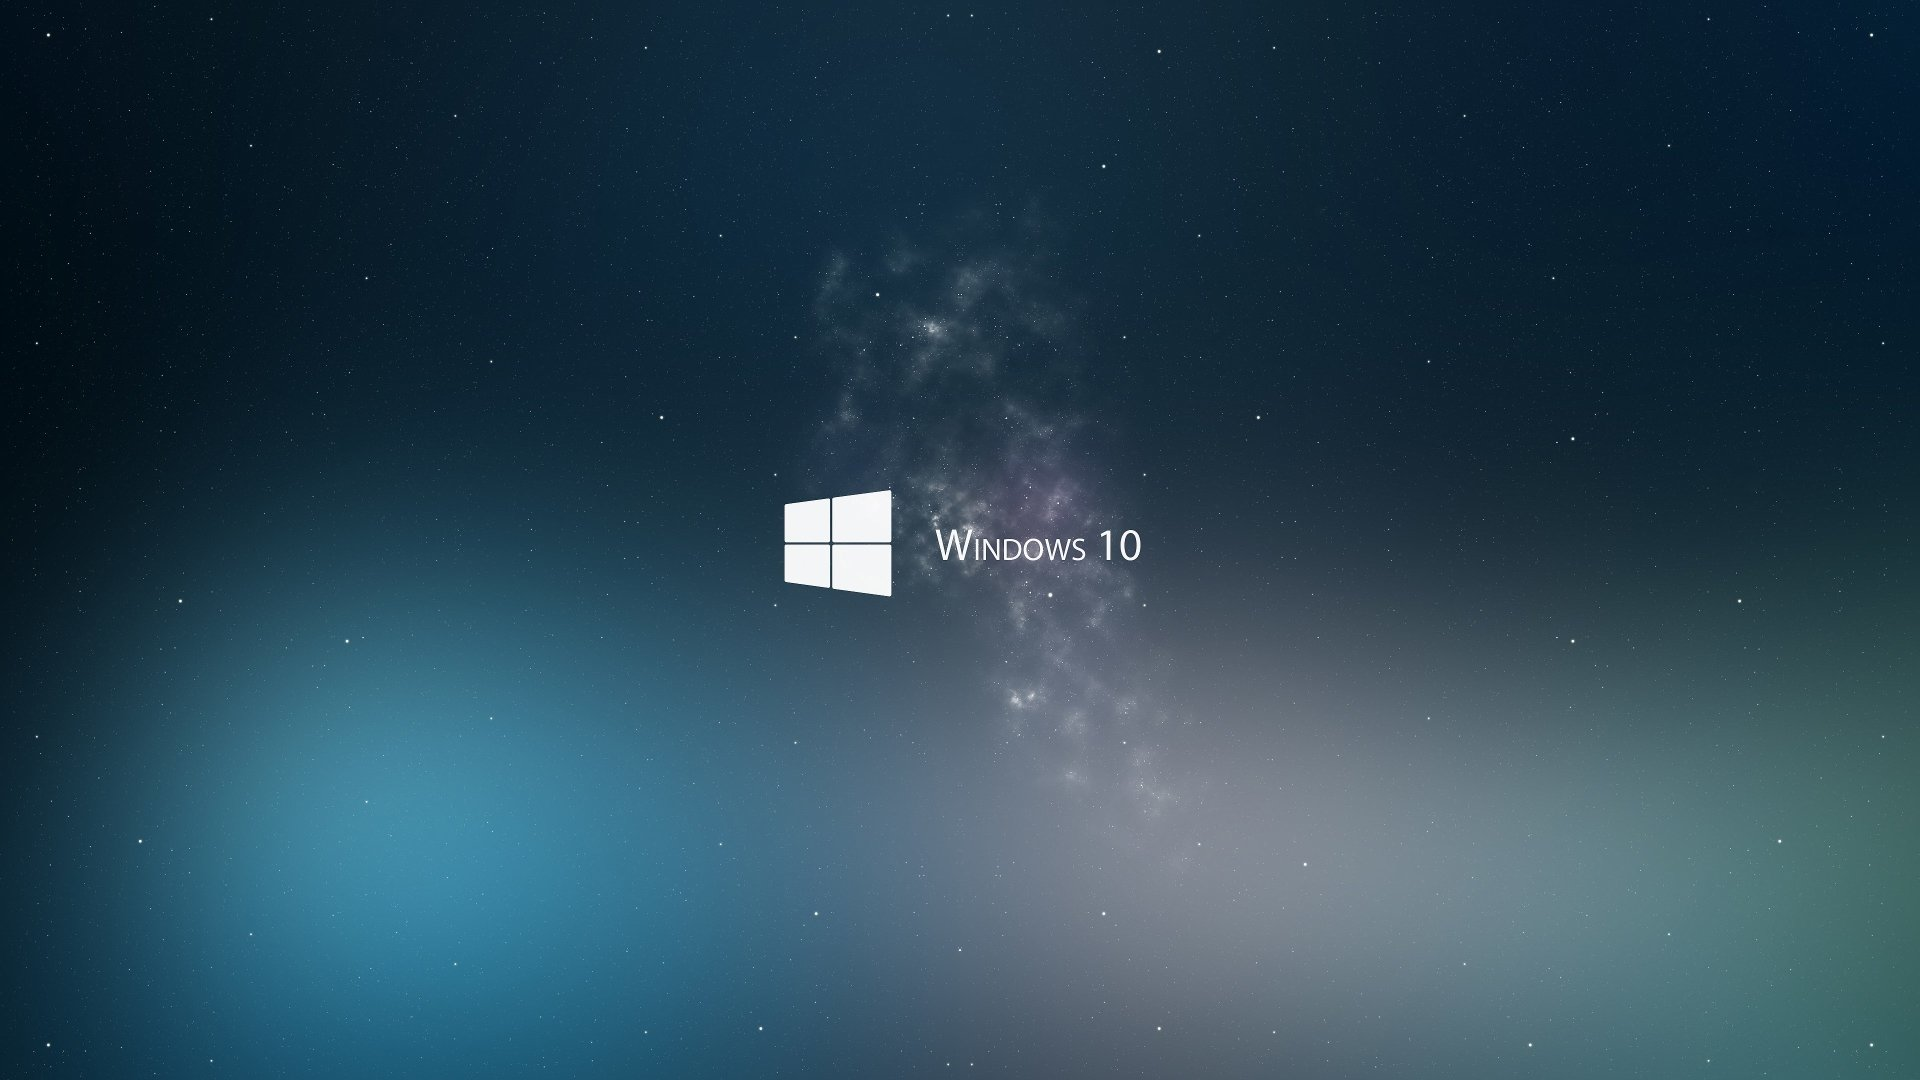 64 Windows 10 Hd Wallpapers Background Images Wallpaper Abyss